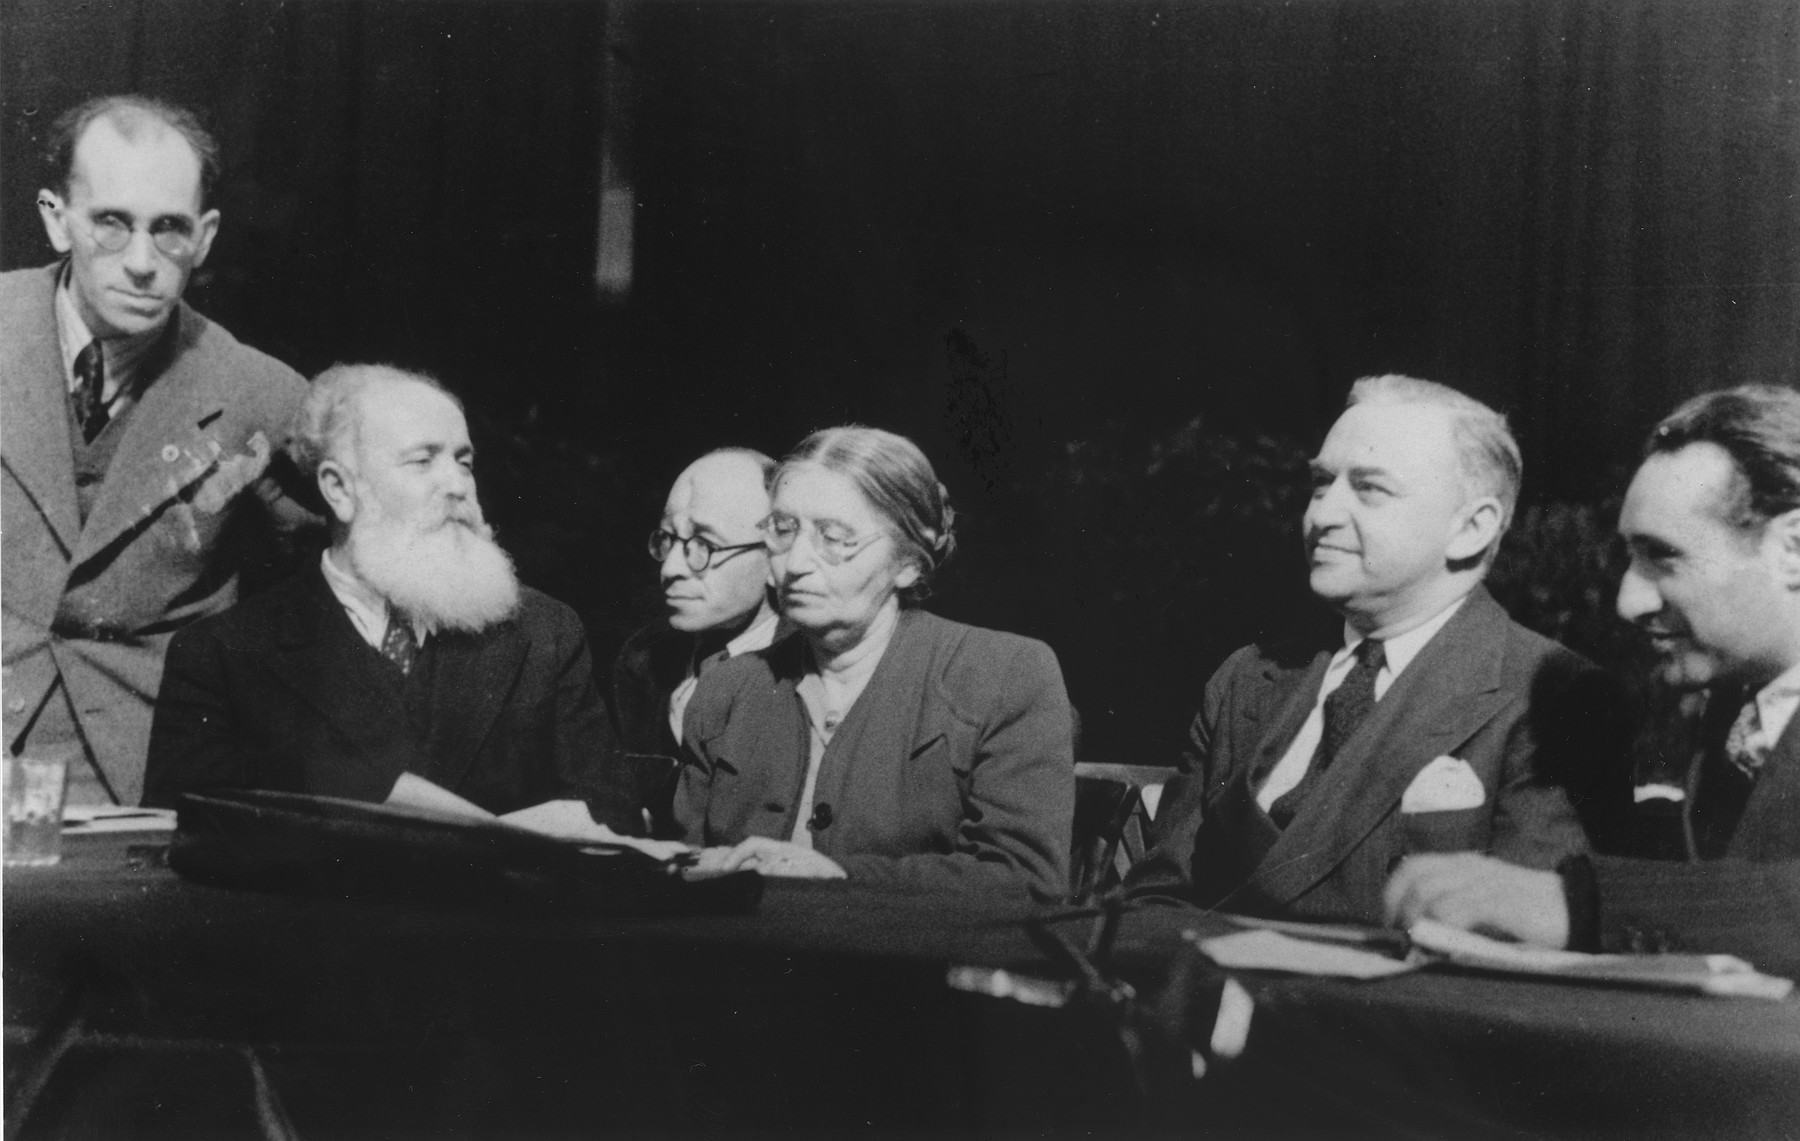 Jewish leaders attend a conference in the US Zone of Germany.   Among those pictured are Jacob Zerubavel (second from the left) and Rabbi Philip Bernstein (second from the right).